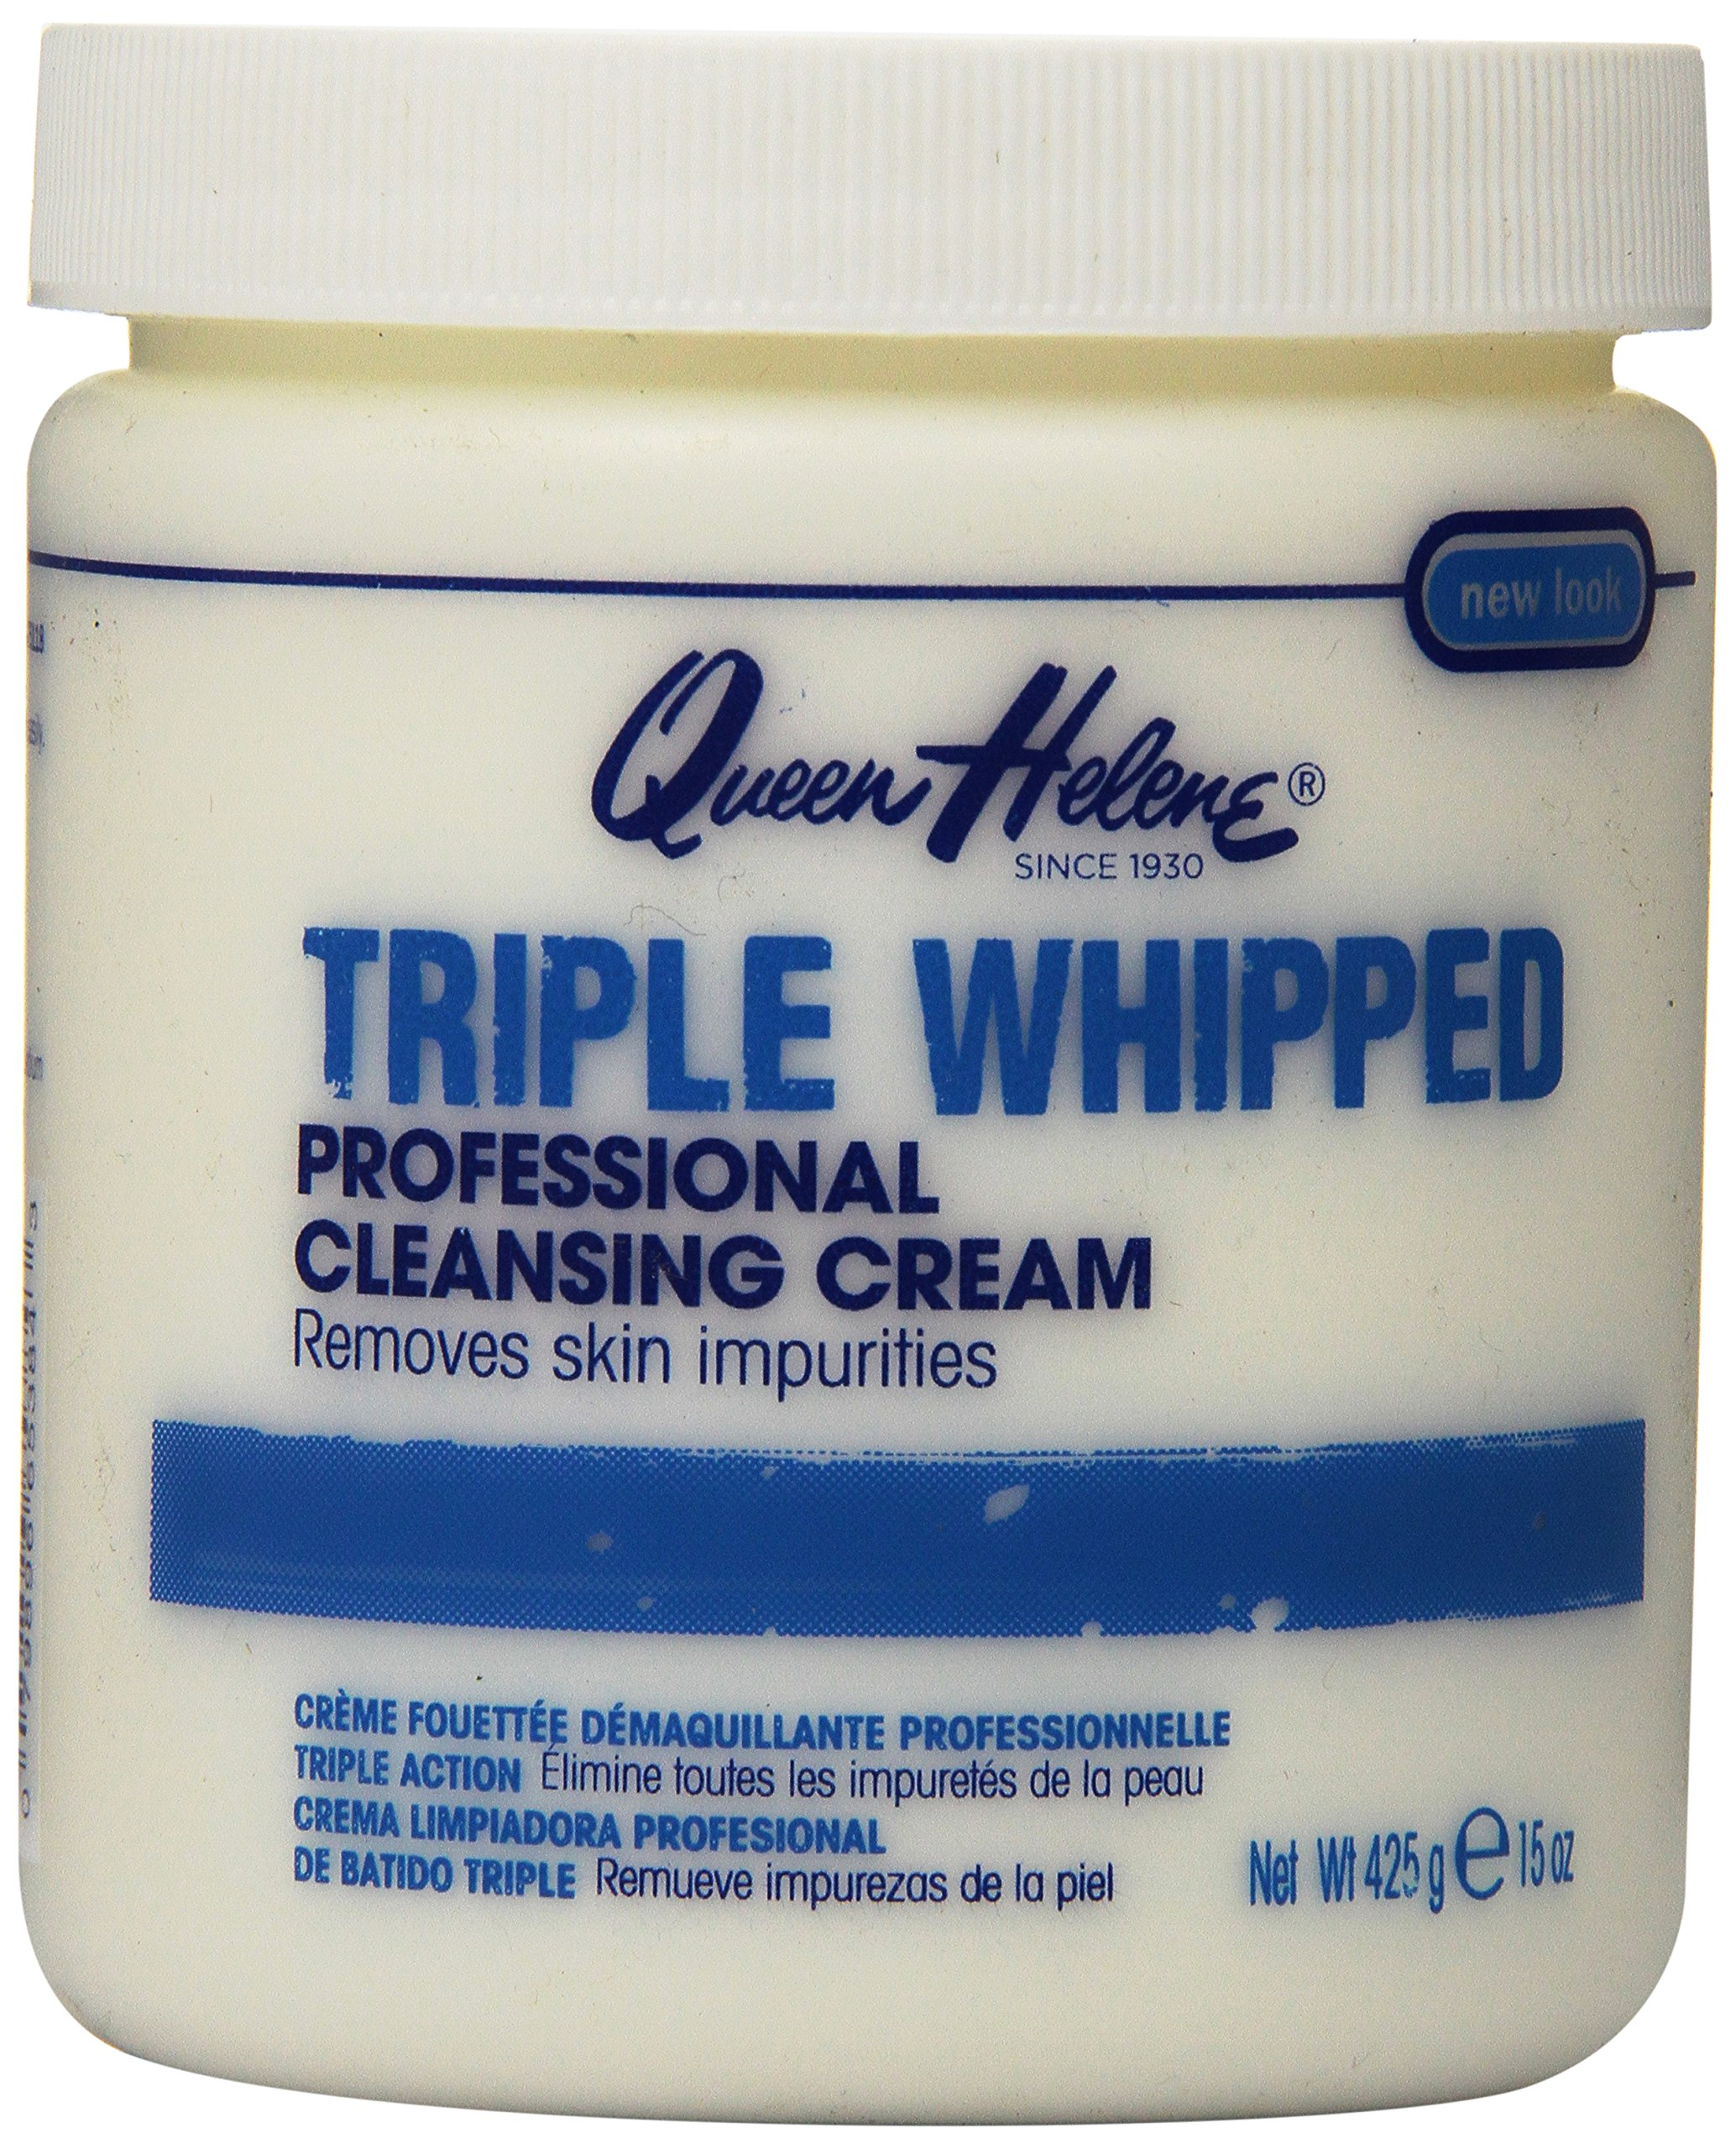 Queen Helene Professional Cleansing Cream, Triple Whipped, 15 Ounce [Packaging May Vary]